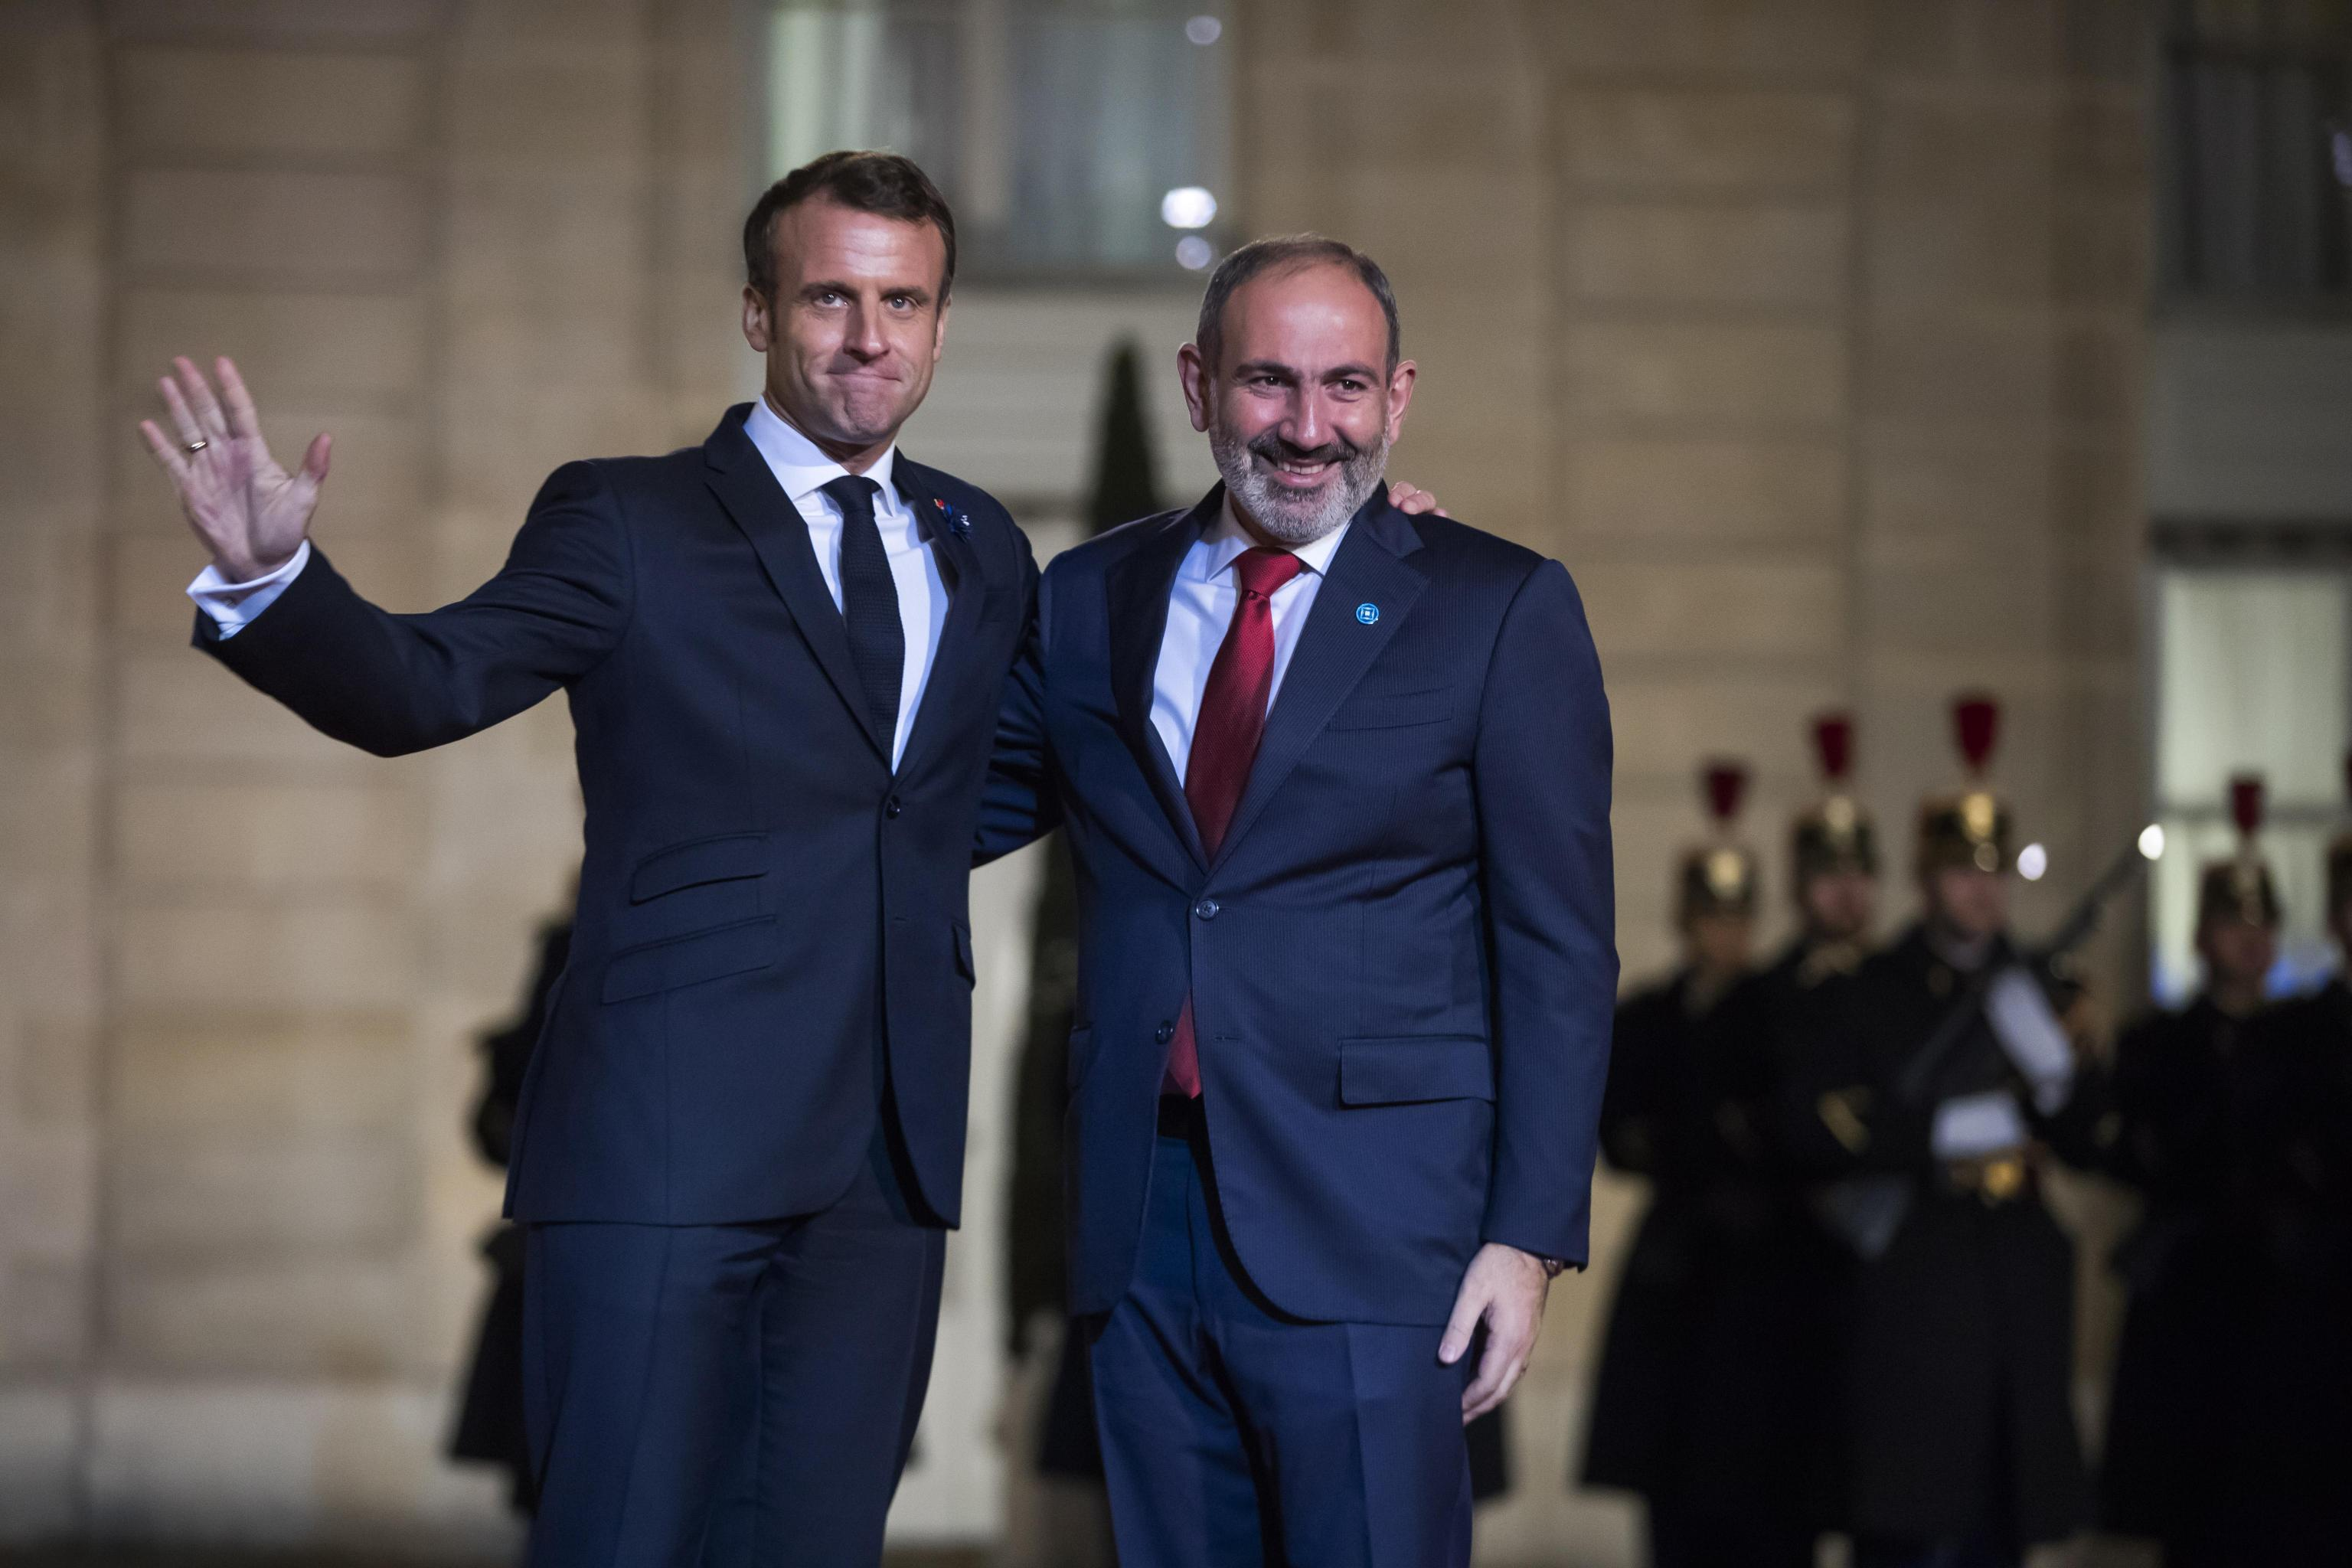 epa07989398 French President Emmanuel Macron (L) welcomes Armenian Prime Minister Nikol Pashinyan (R)  for a dinner held with participants of the Paris Peace Forum, at the Elysee Palace, in Paris, France, 11 November 2019.  EPA/CHRISTOPHE PETIT TESSON